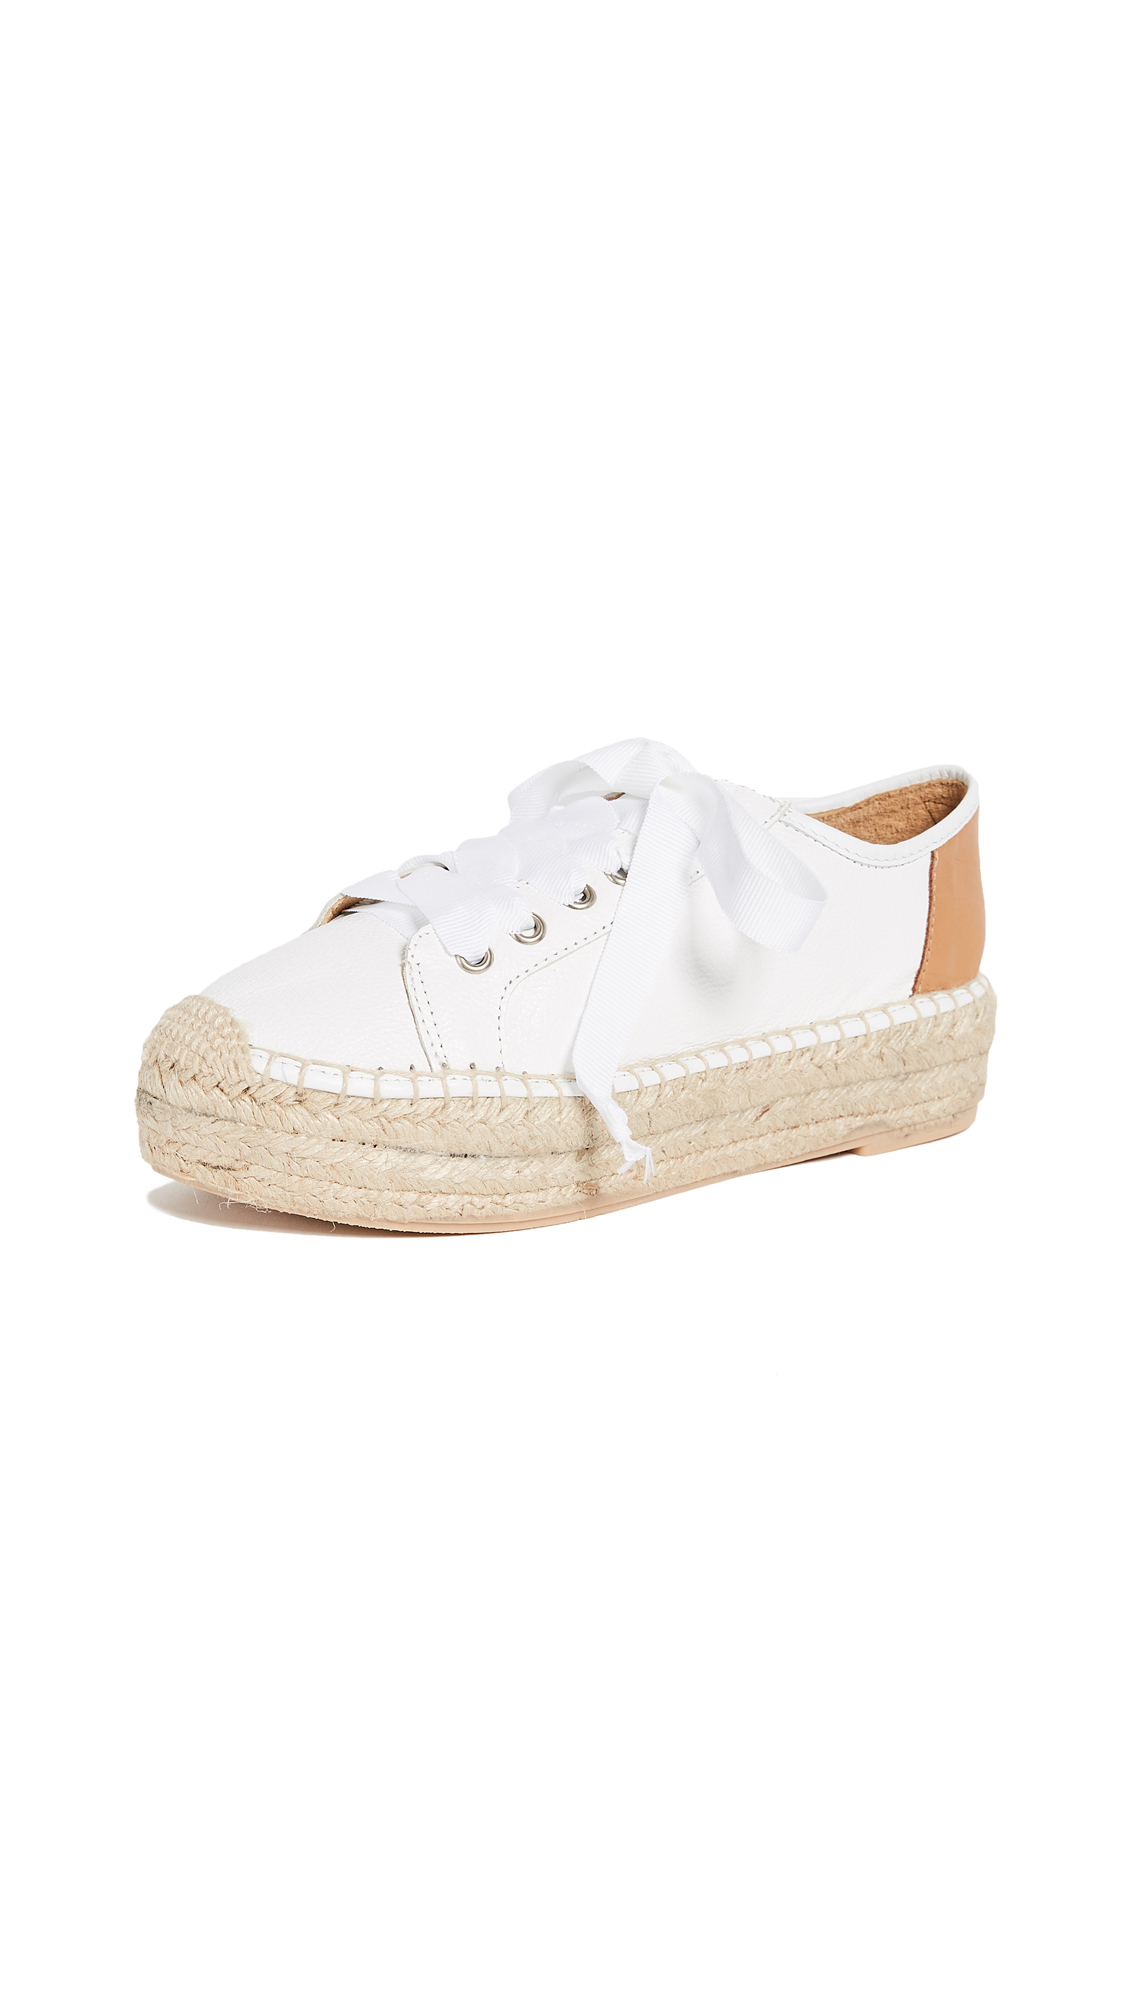 Matt Bernson Eze Leather Espadrille Sneakers - Wheat/White